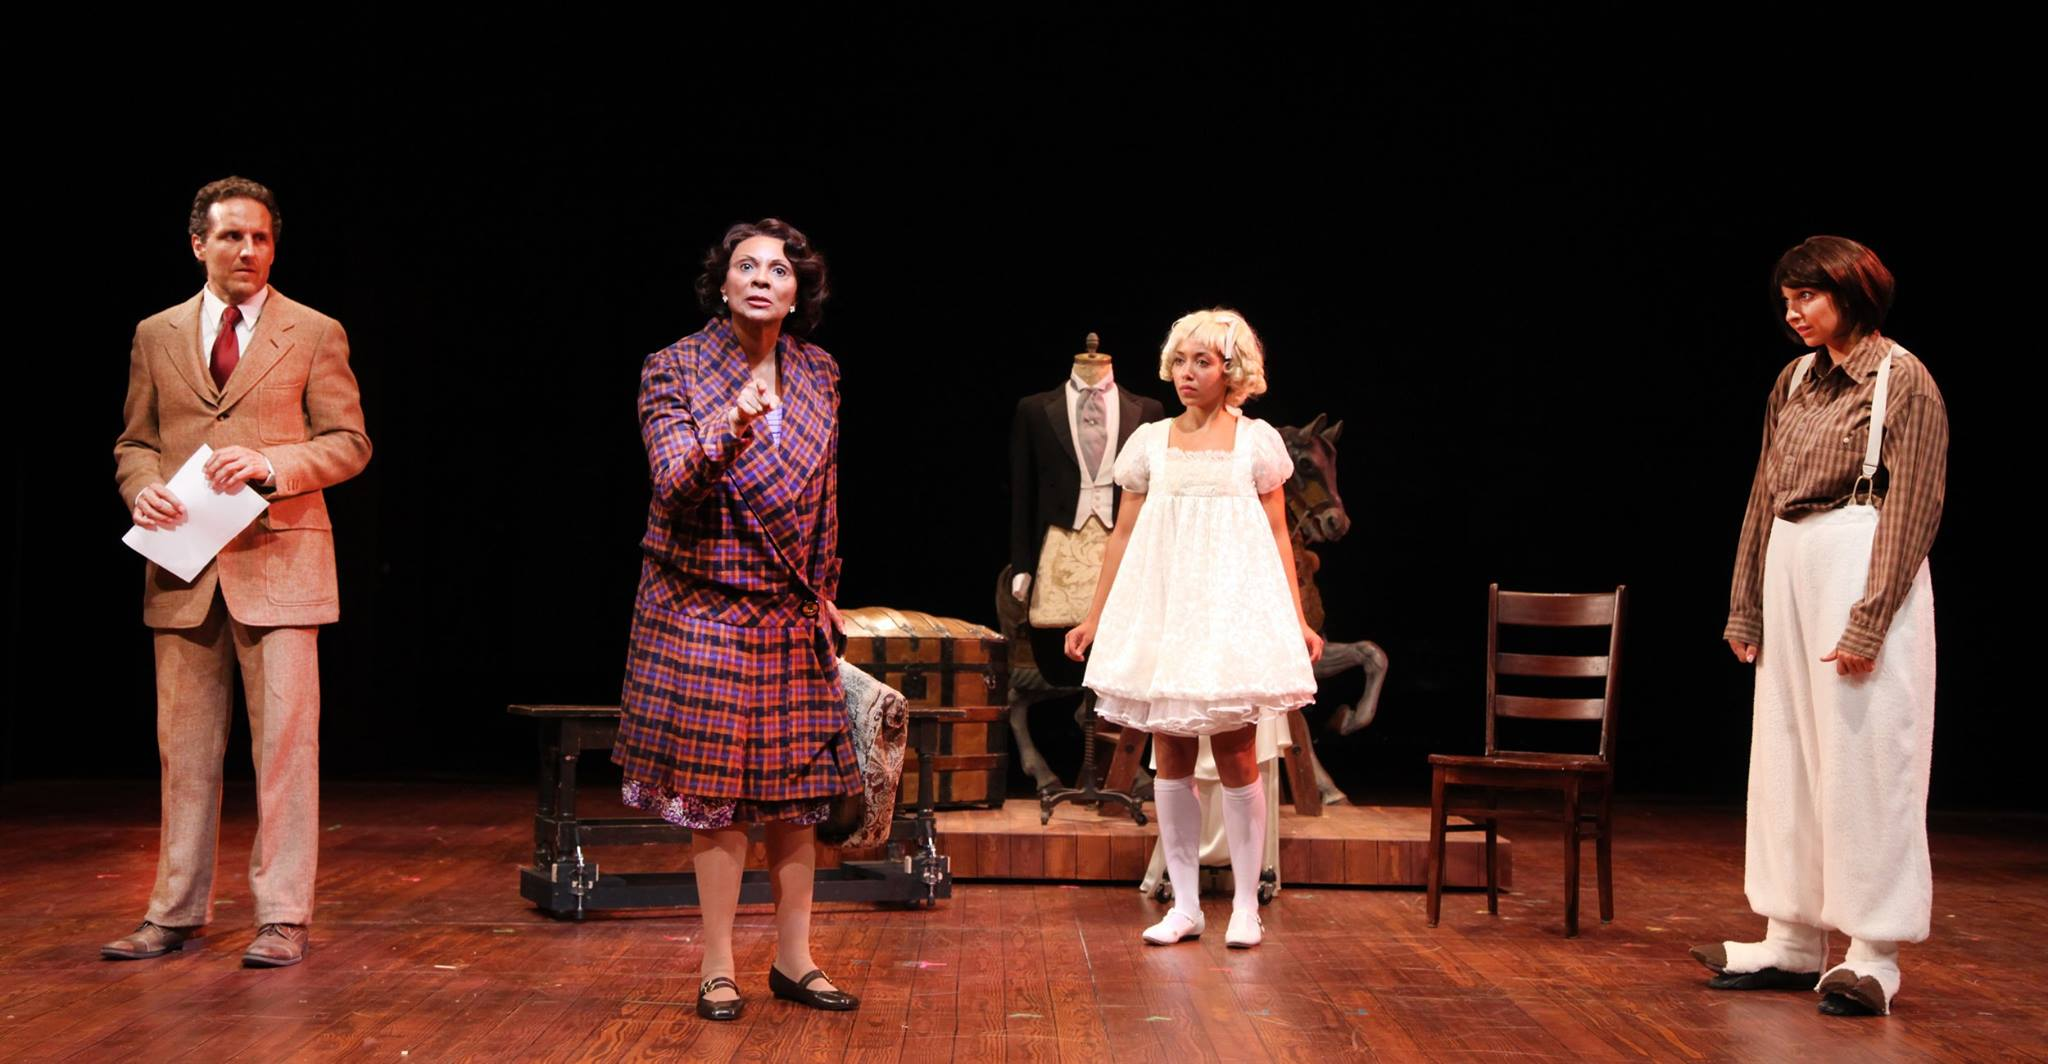 Scott Ripley, Leslie Uggams Alanna Saunders and Amandina Altomare in  Gypsy  at Connecticut Repertory Theatre. Directed and Produced by Vincent J. Cardinal